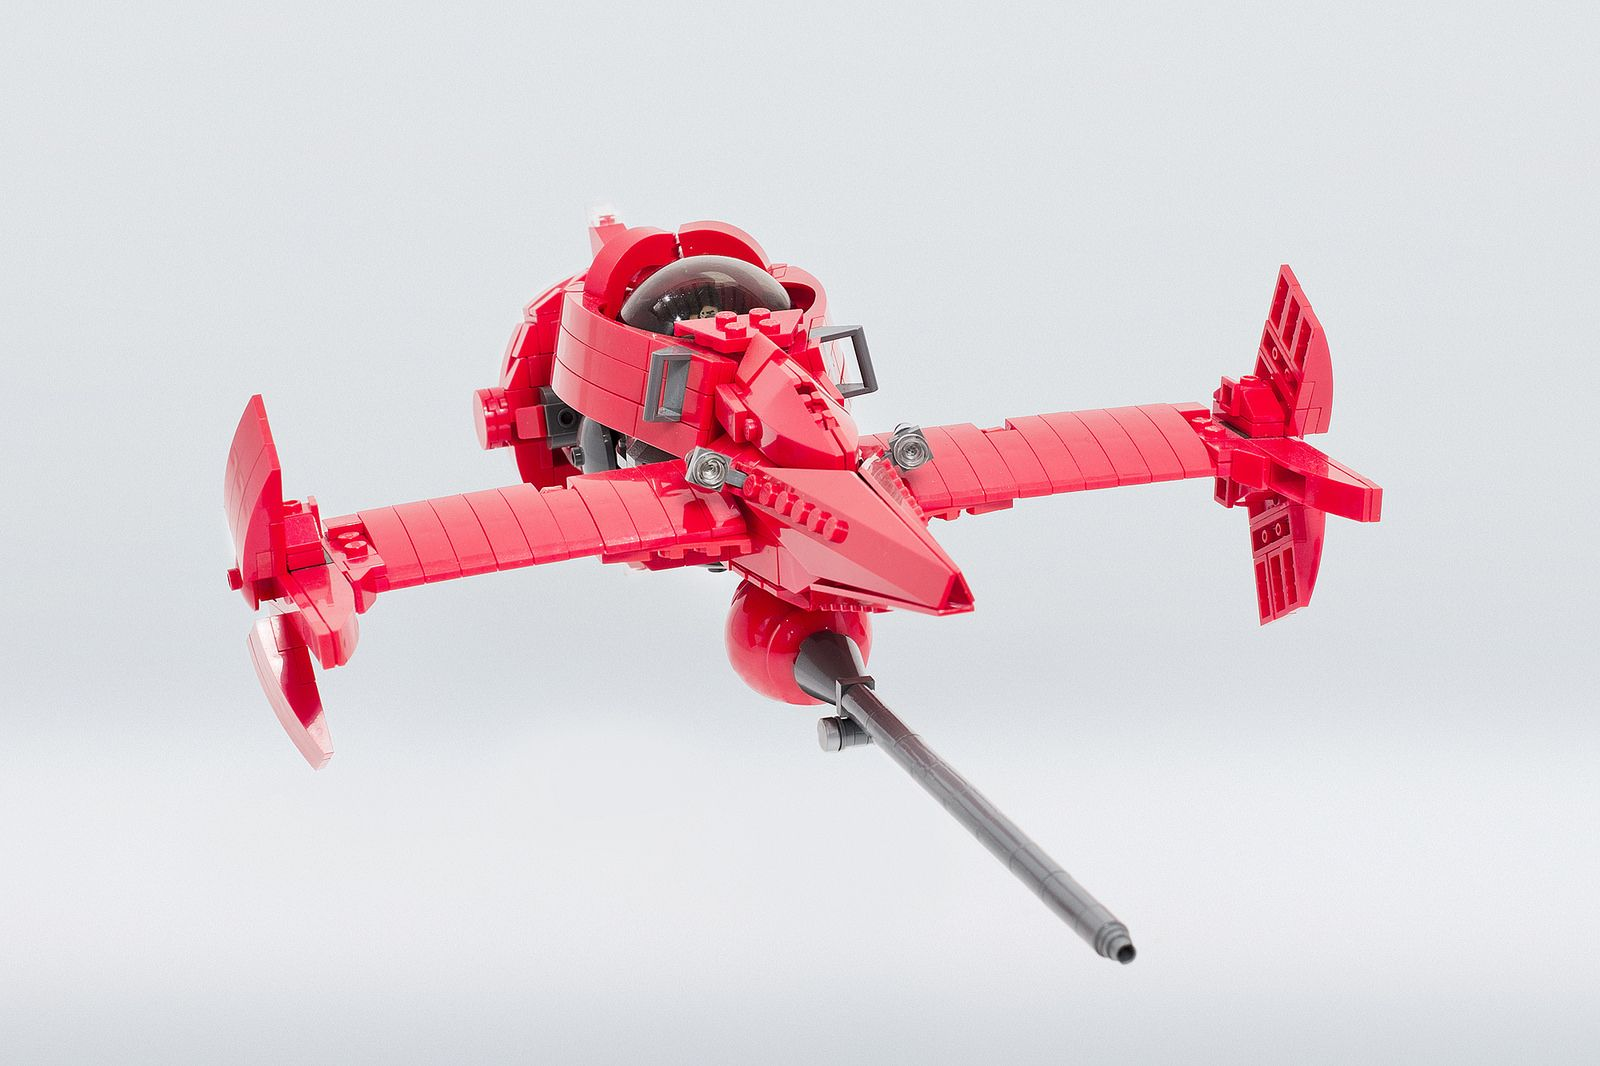 https://flic.kr/p/pEPpJN | Cowboy Bebop Swordfish II | Cowboy Bebop is still my favorite anime series and this is Spike's ship, the most iconic spacecraft! Big shout-out to Adrian Florea. I wouldn't be able to build this, without getting inspiration from his creation. Features: - foldable wings - movable plasma cannon - opening mechanism on the engine - landing gear